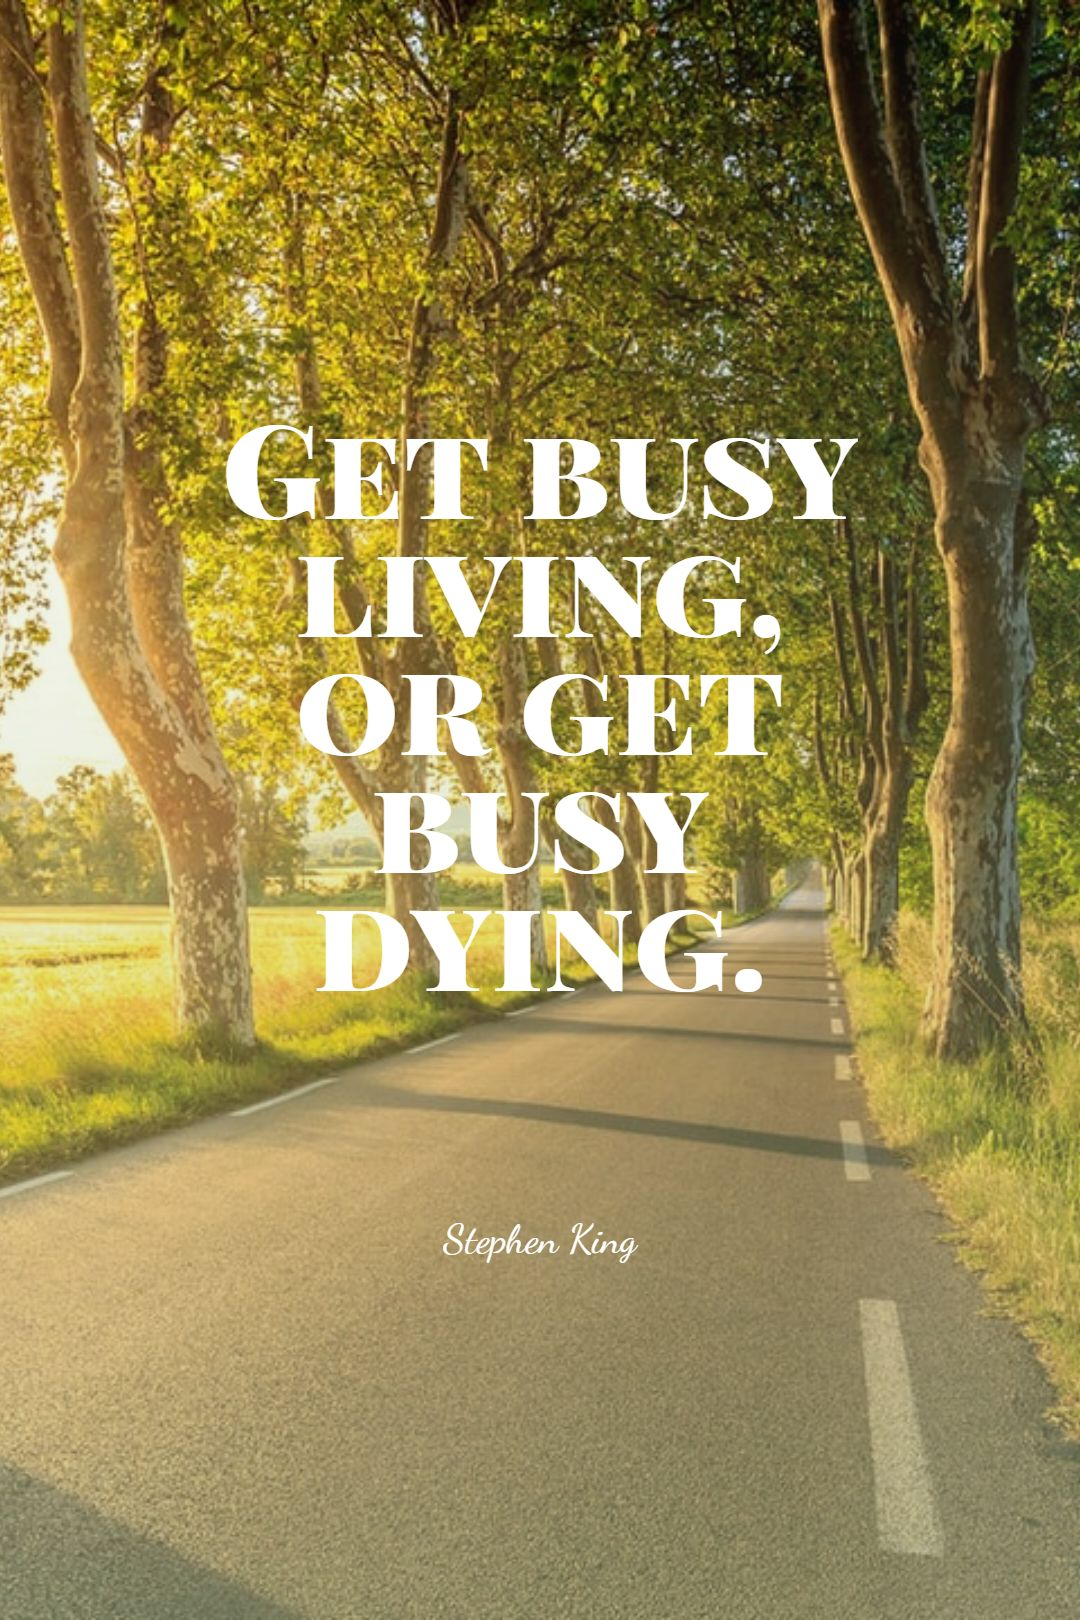 Quotes image of Get busy living, or get busy dying.